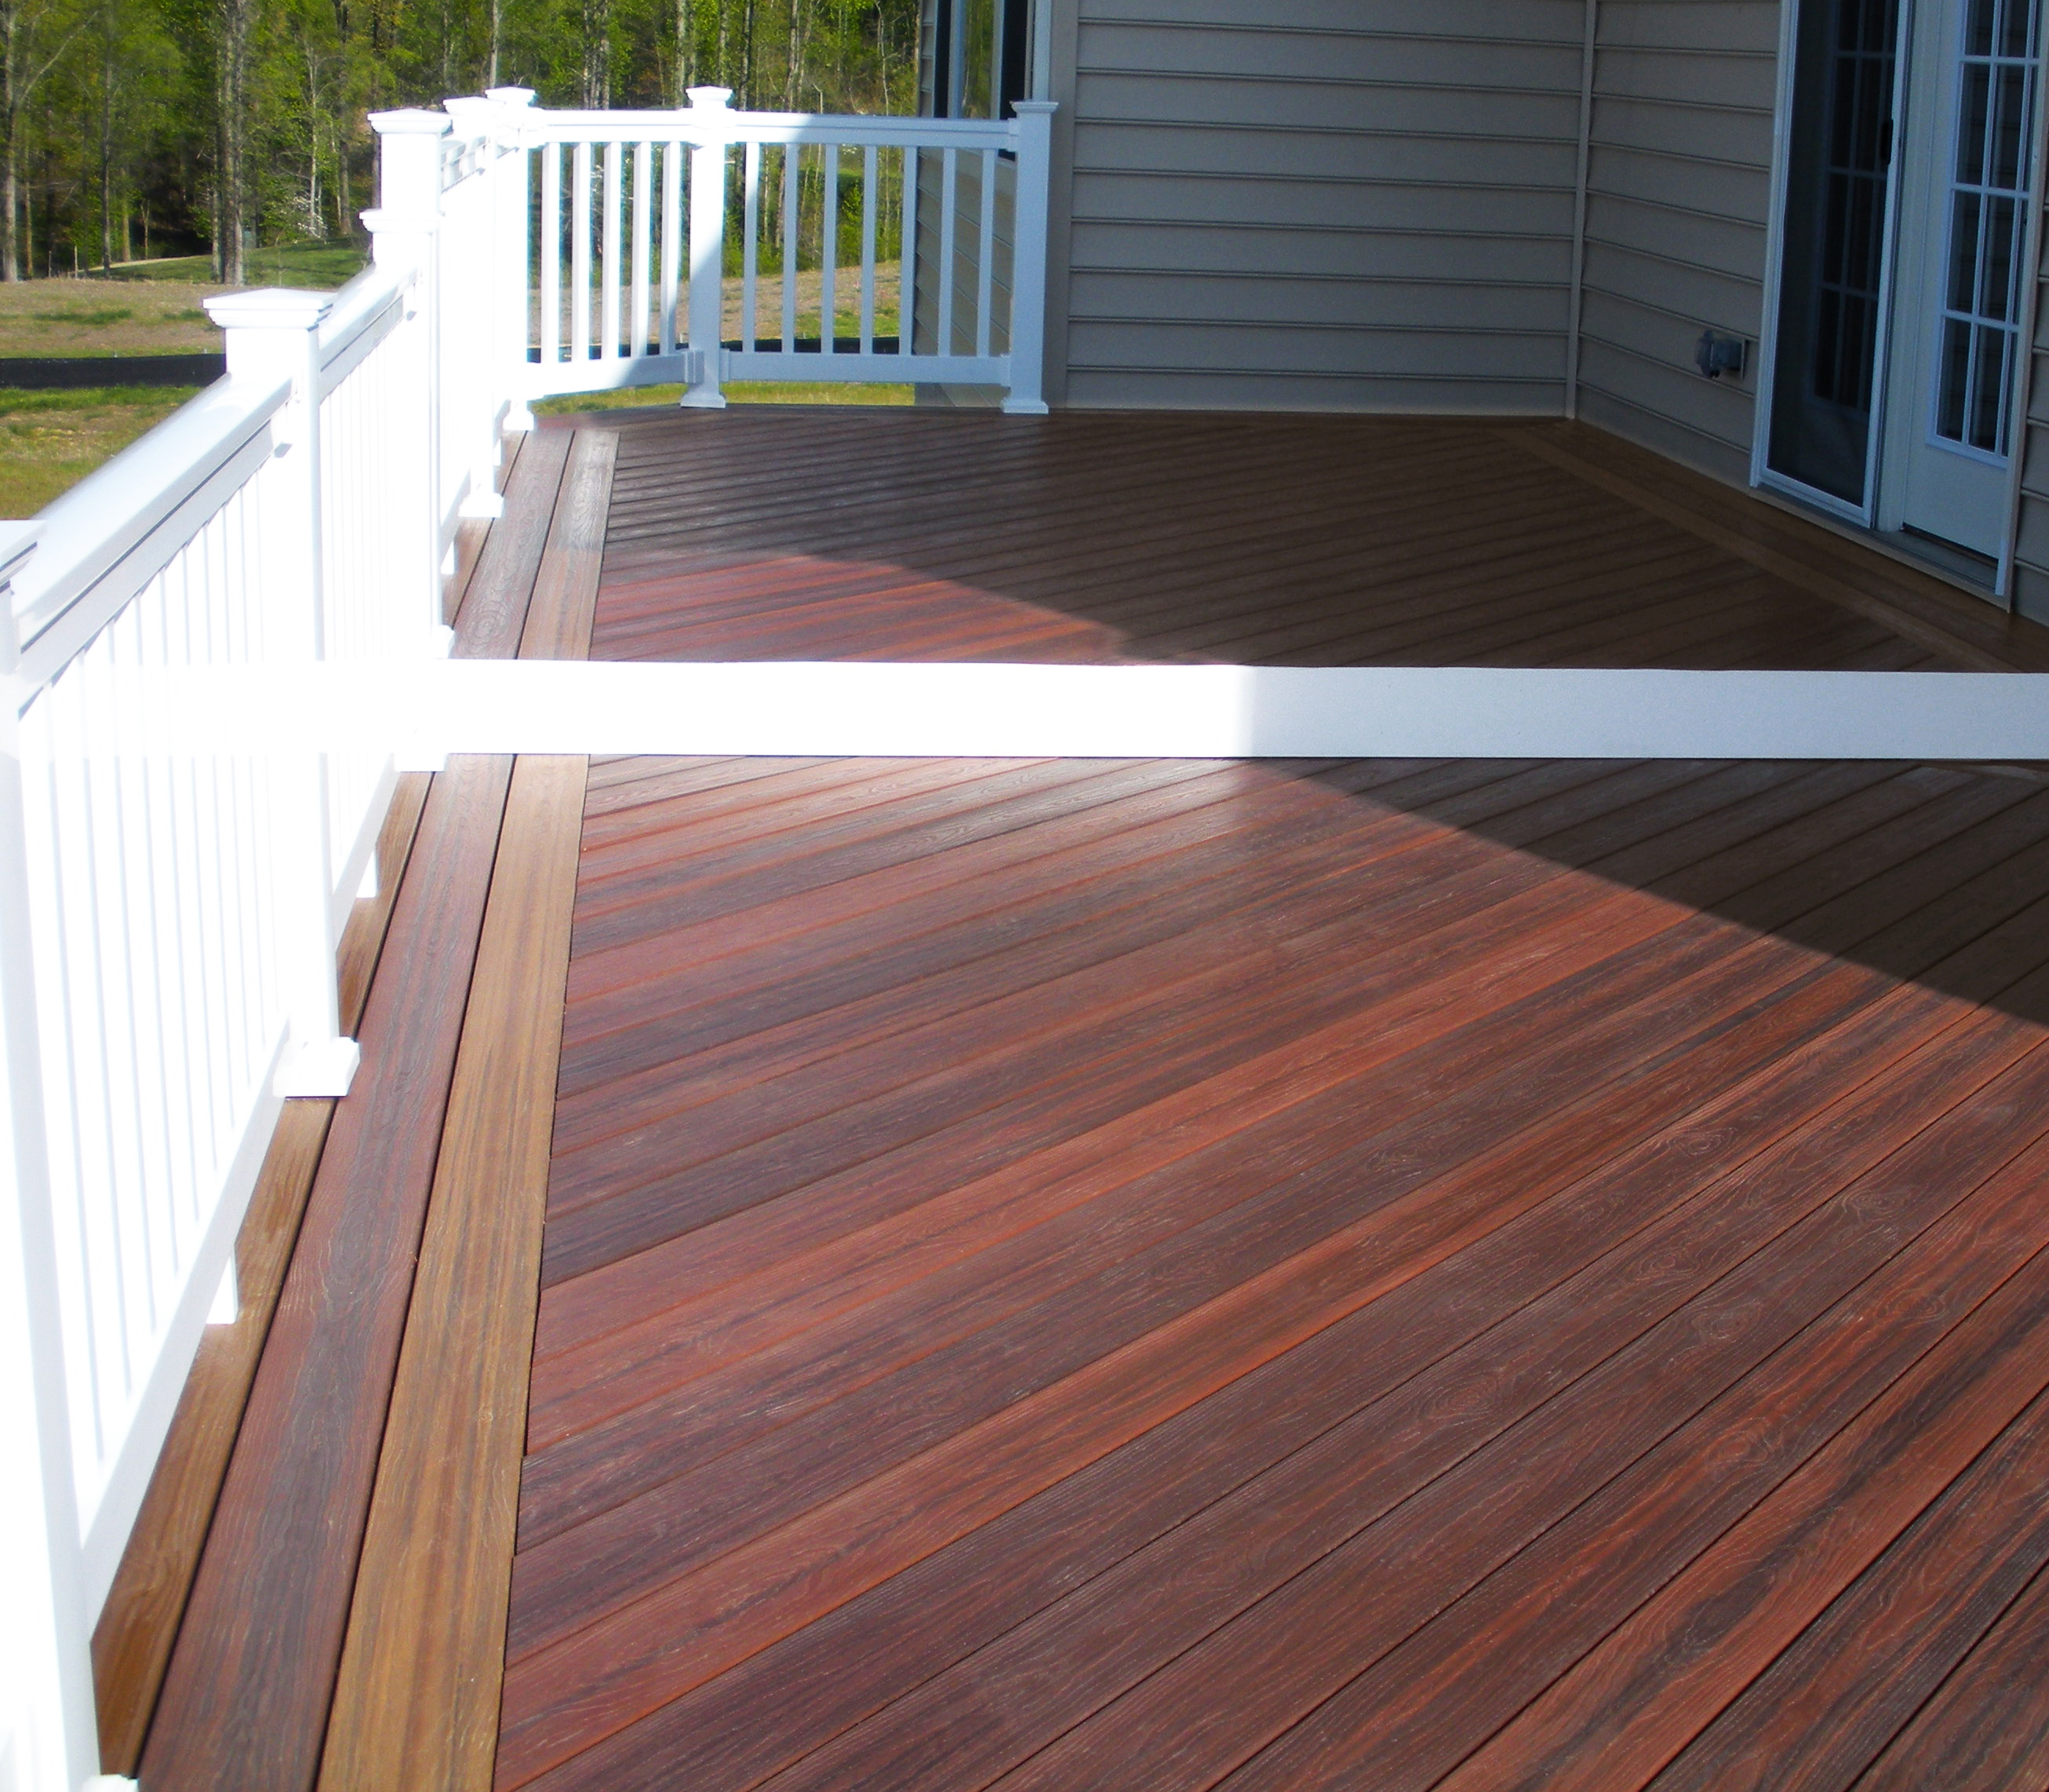 Best composite decking best composite decking resistant for Best composite decking material